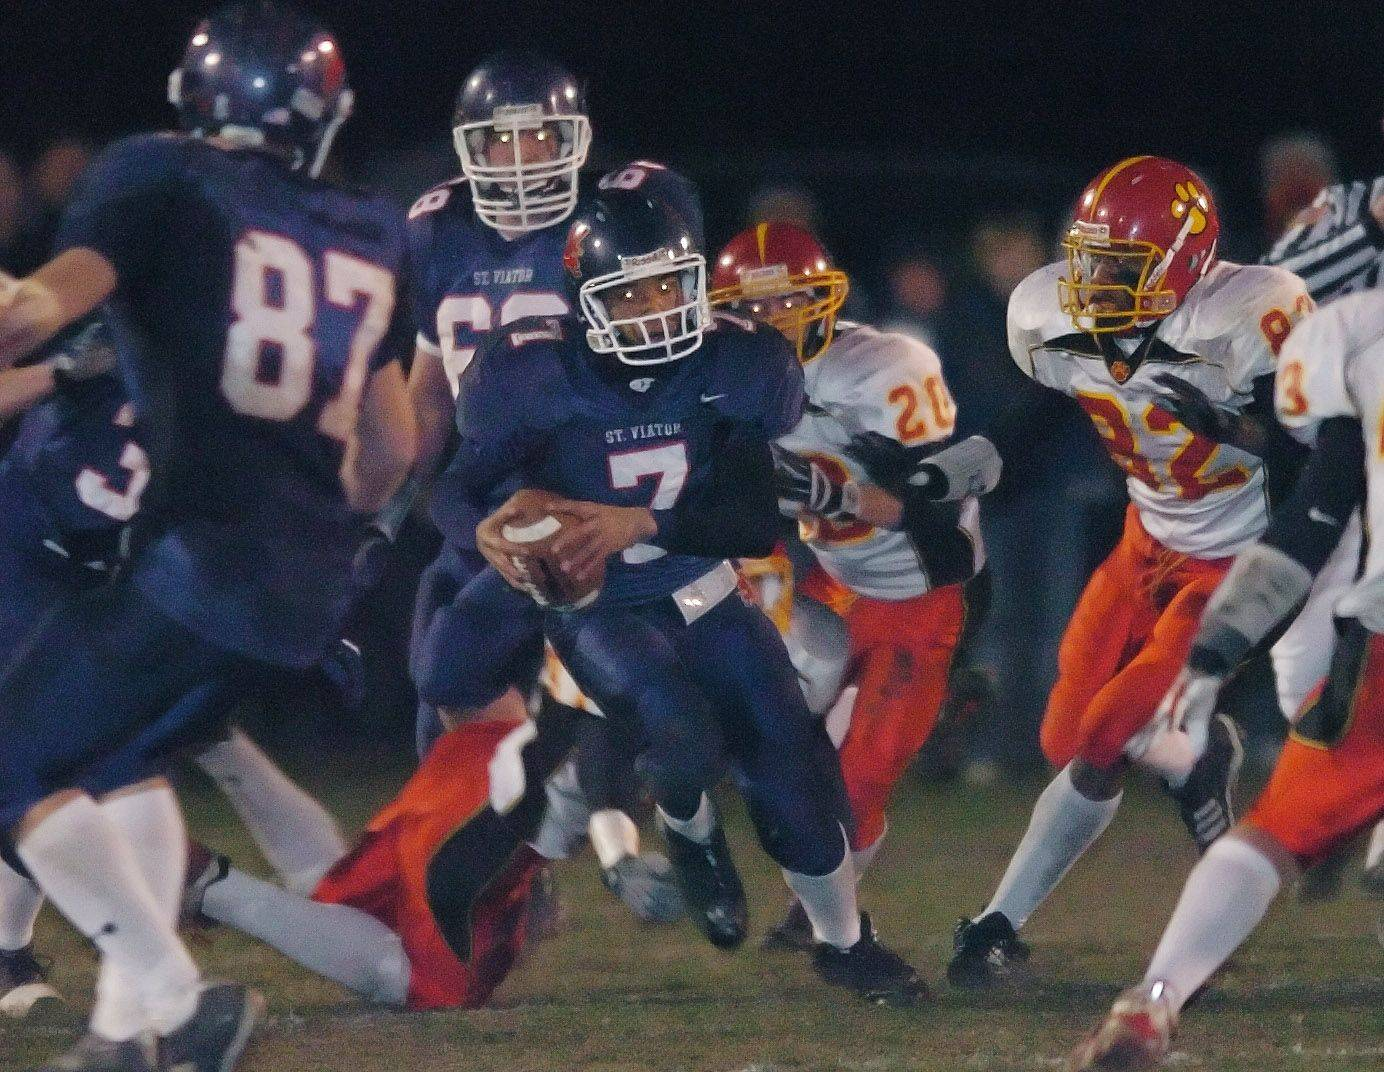 Dante Warren quarterbacked St. Viator to a second-round playoff appearance in 2006. Warren went to South Dakota and has been invited to participate in the second annual FCS Senior Scout Bowl on Saturday in Myrtle Beach, S.C.